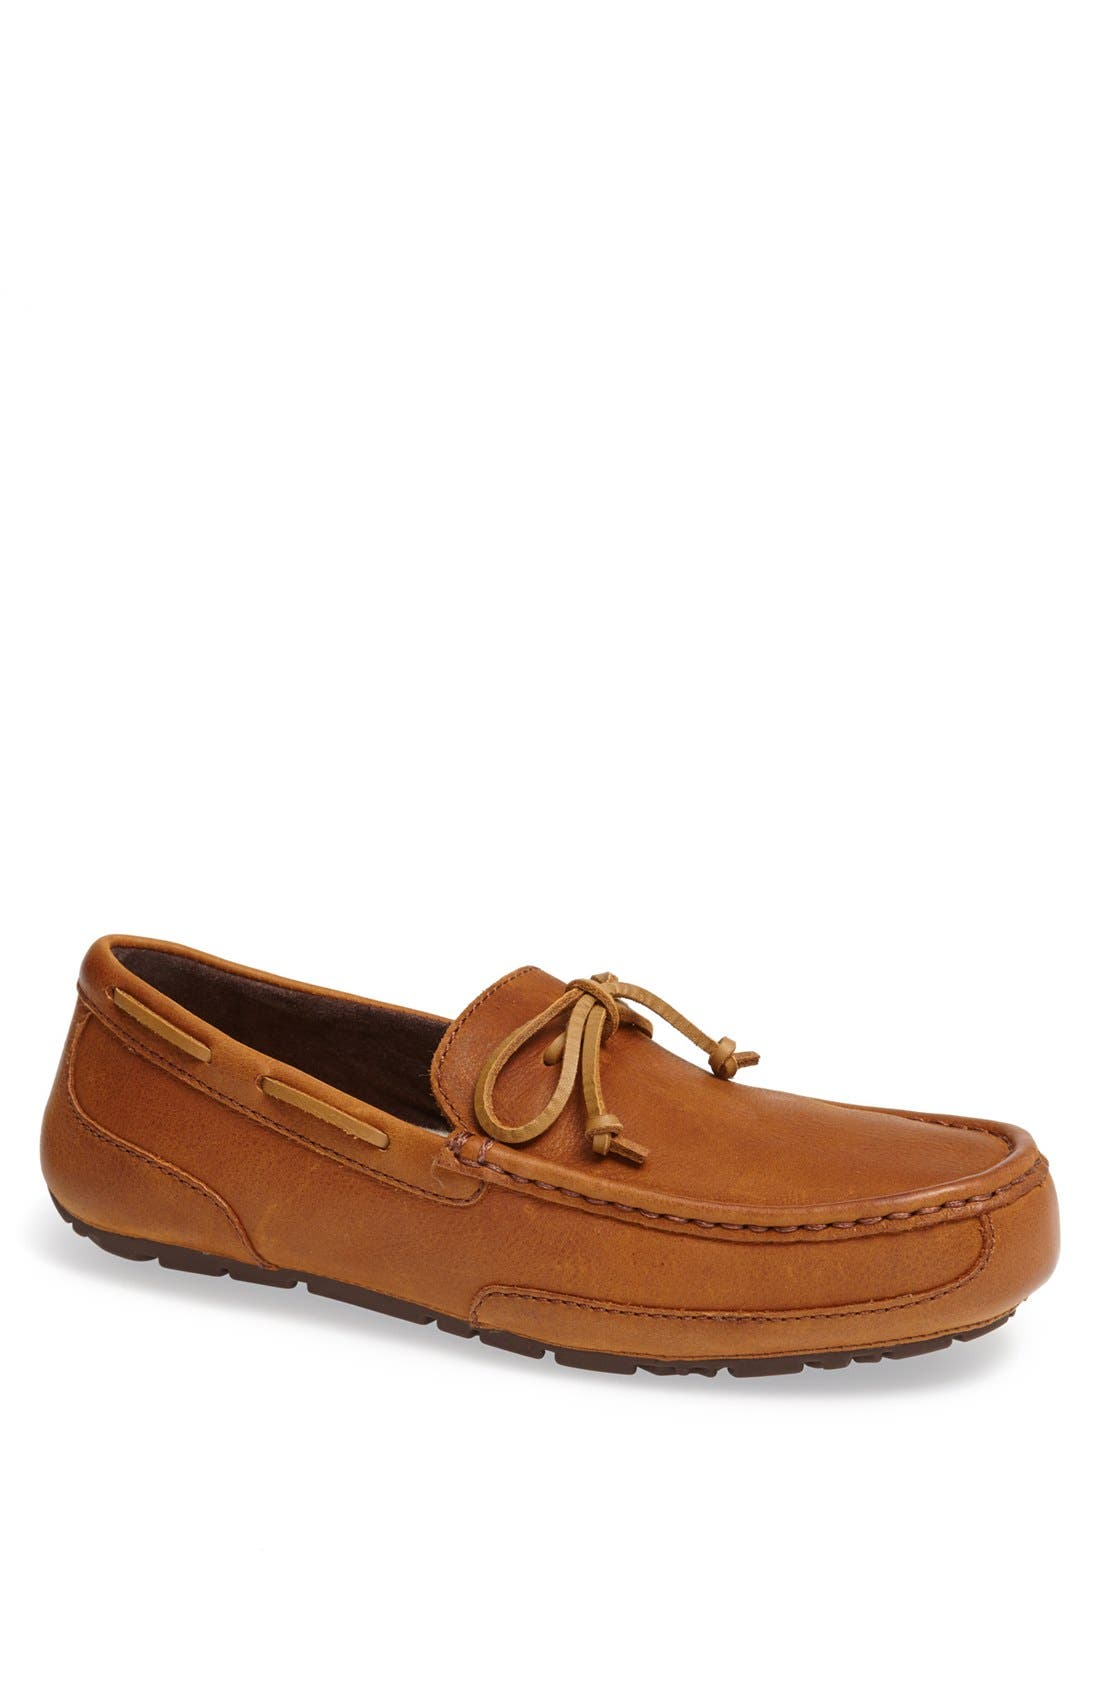 'Chester' Driving Loafer,                             Main thumbnail 1, color,                             Chestnut